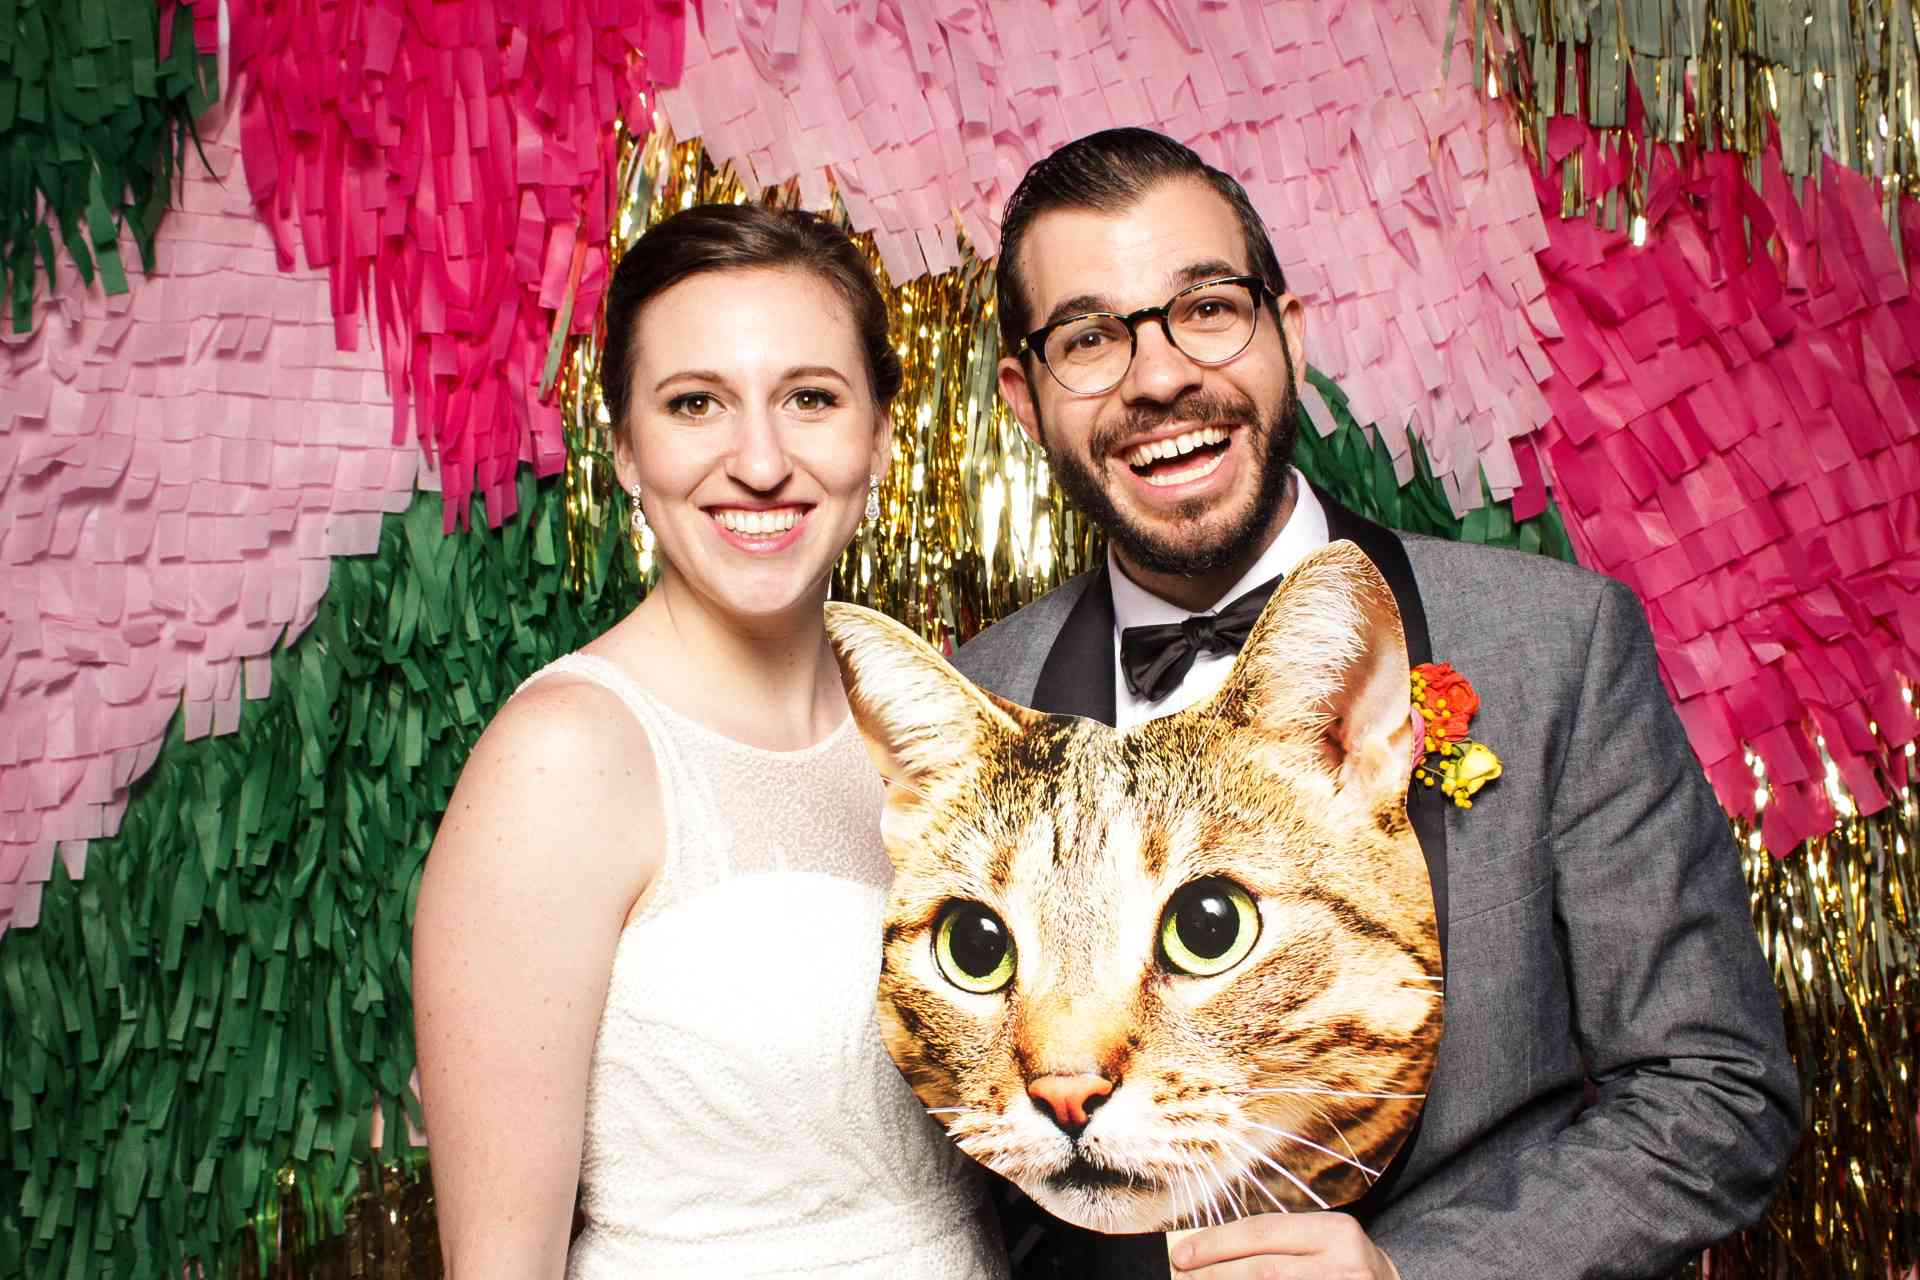 Couple with cat prop in photobooth